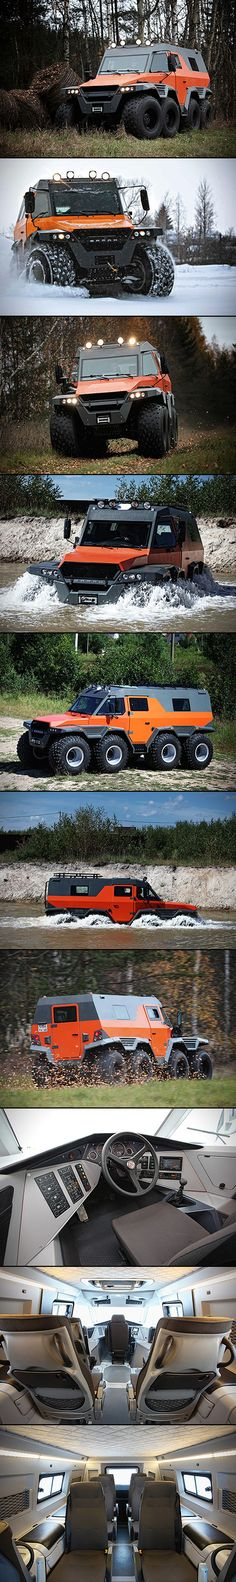 In case of zombies, there's all-terrain vehicles, and then there's the Avtoros Shaman 8×8 all-terrain vehicle – the end all, be all for ATVs.  Measuring in at 6 meters long, 3 meters high, and 2.5 meters wide, this 2.5-ton beast can tackle literally any terrain, from land and snow right down to floating through water. The vehicle is powered by an Iveco F1C 3.0-liter turbo diesel that pumps out 146-horsepower through a 6-speed manual gearbox, but it's the steering system that makes this thing ...